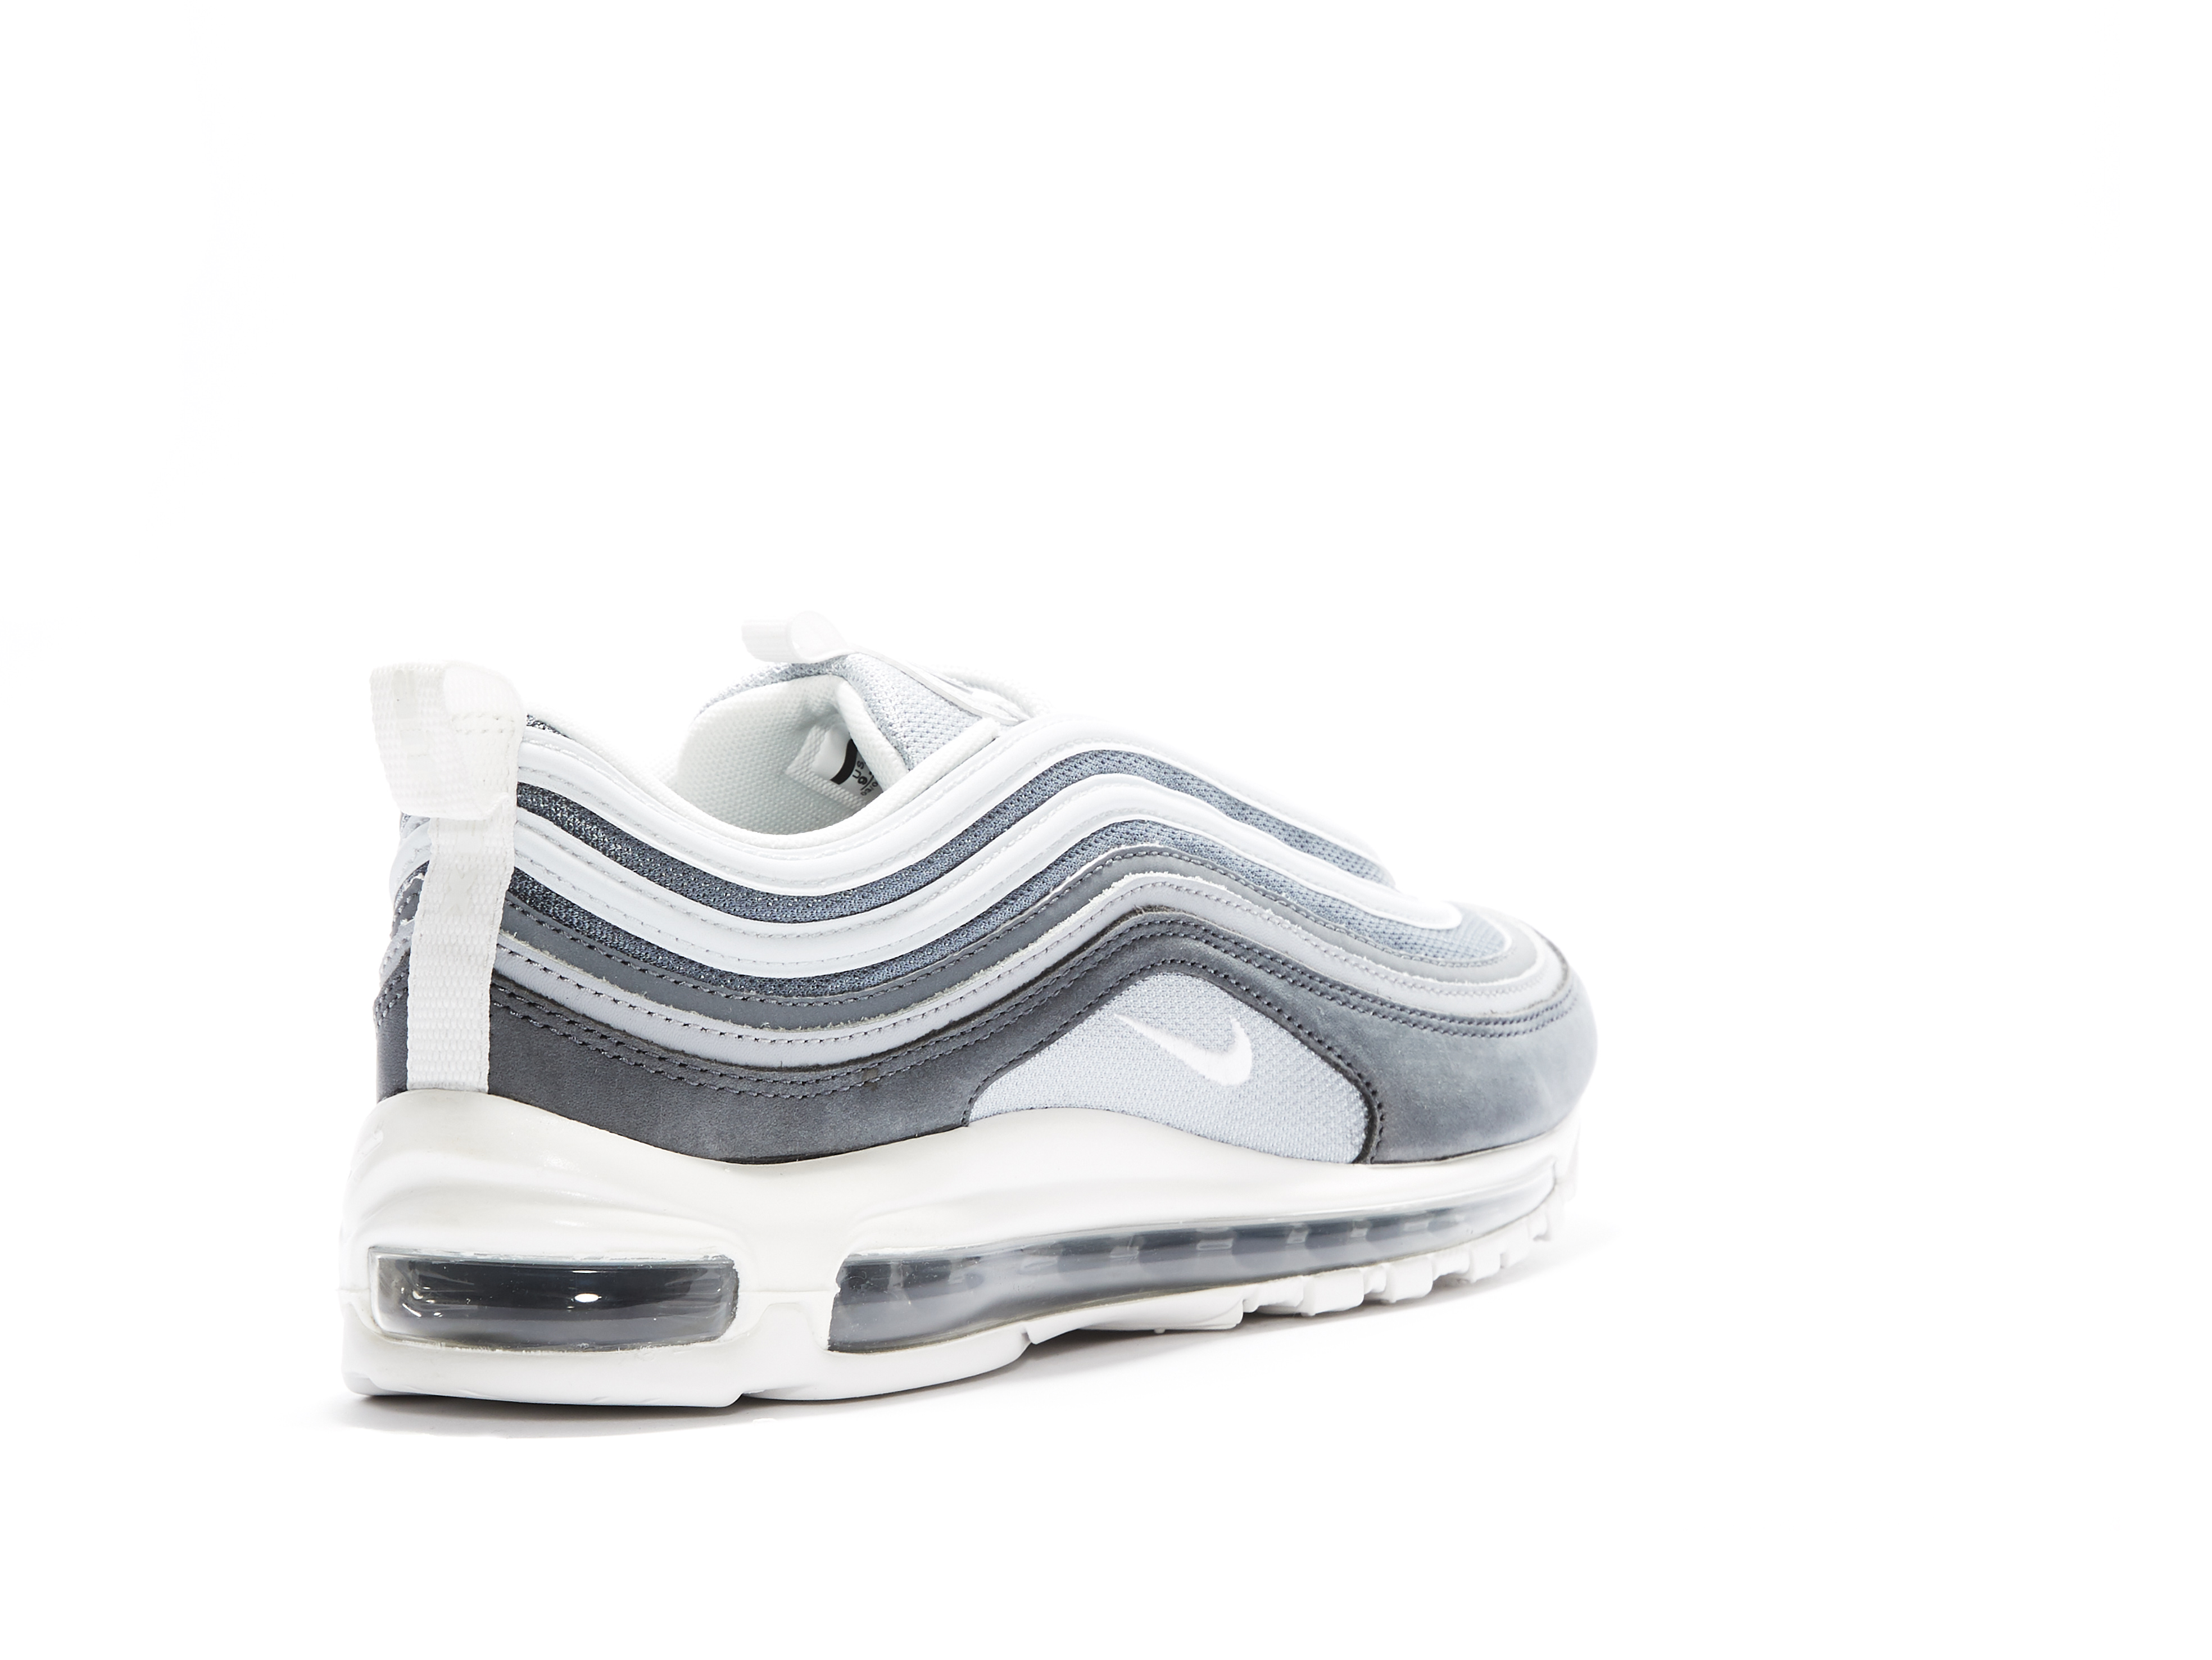 Nike Air Max 97 Premium 312834 005 Wolf Grey 6 Og Undefeated